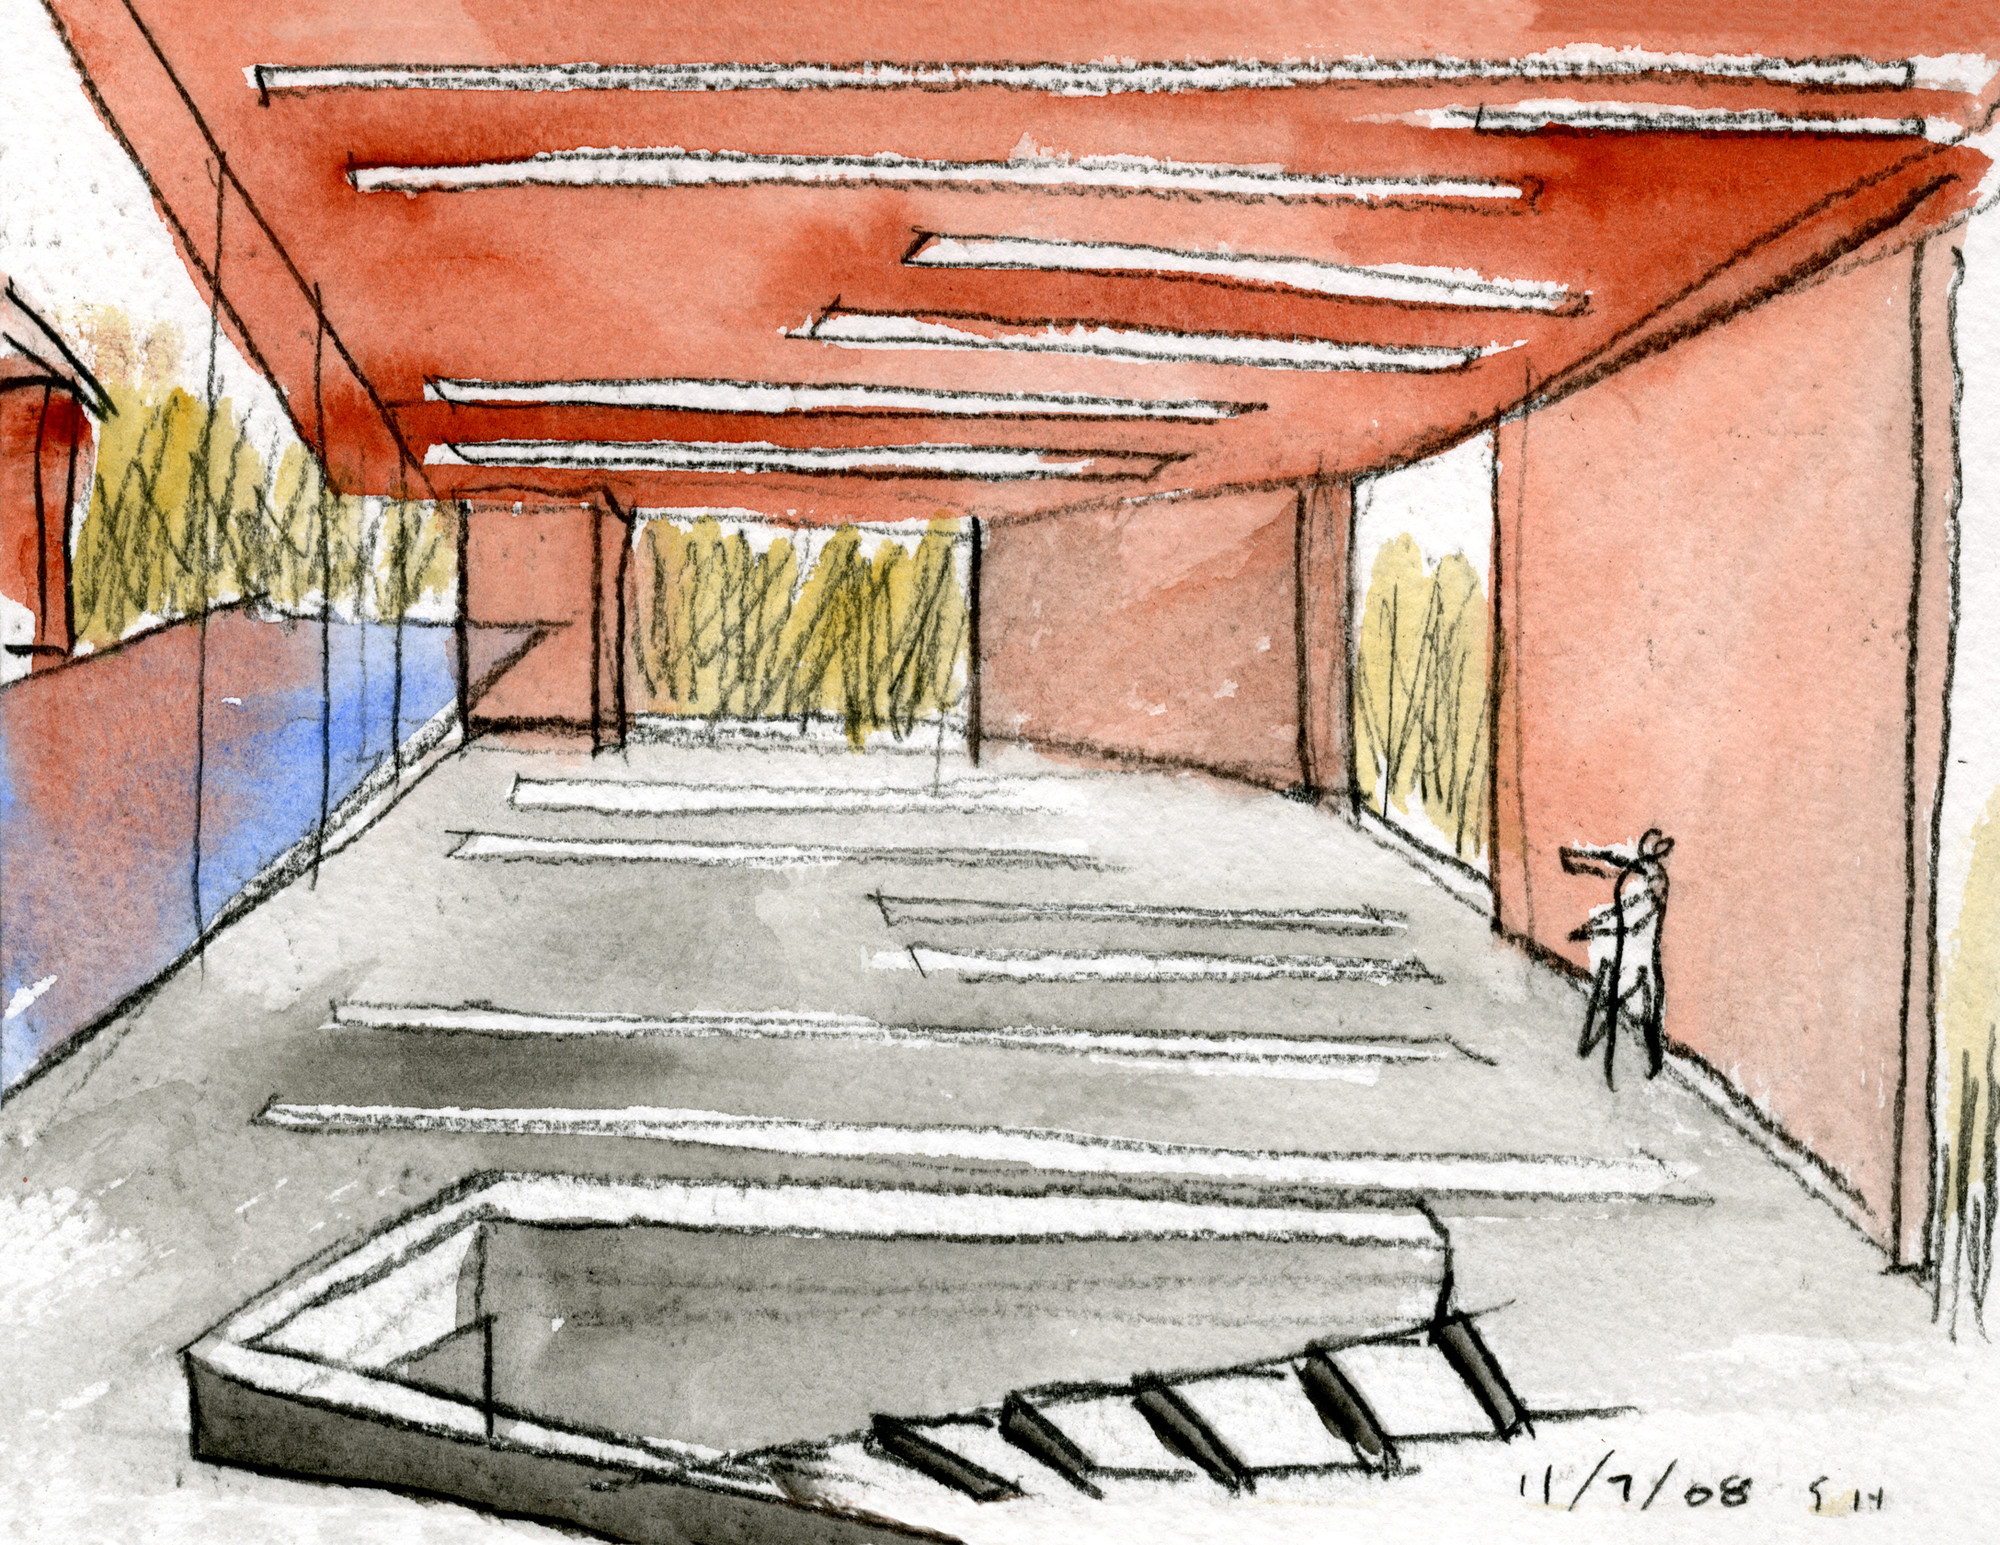 Dibujo. Image Courtesy of Steven Holl Architects